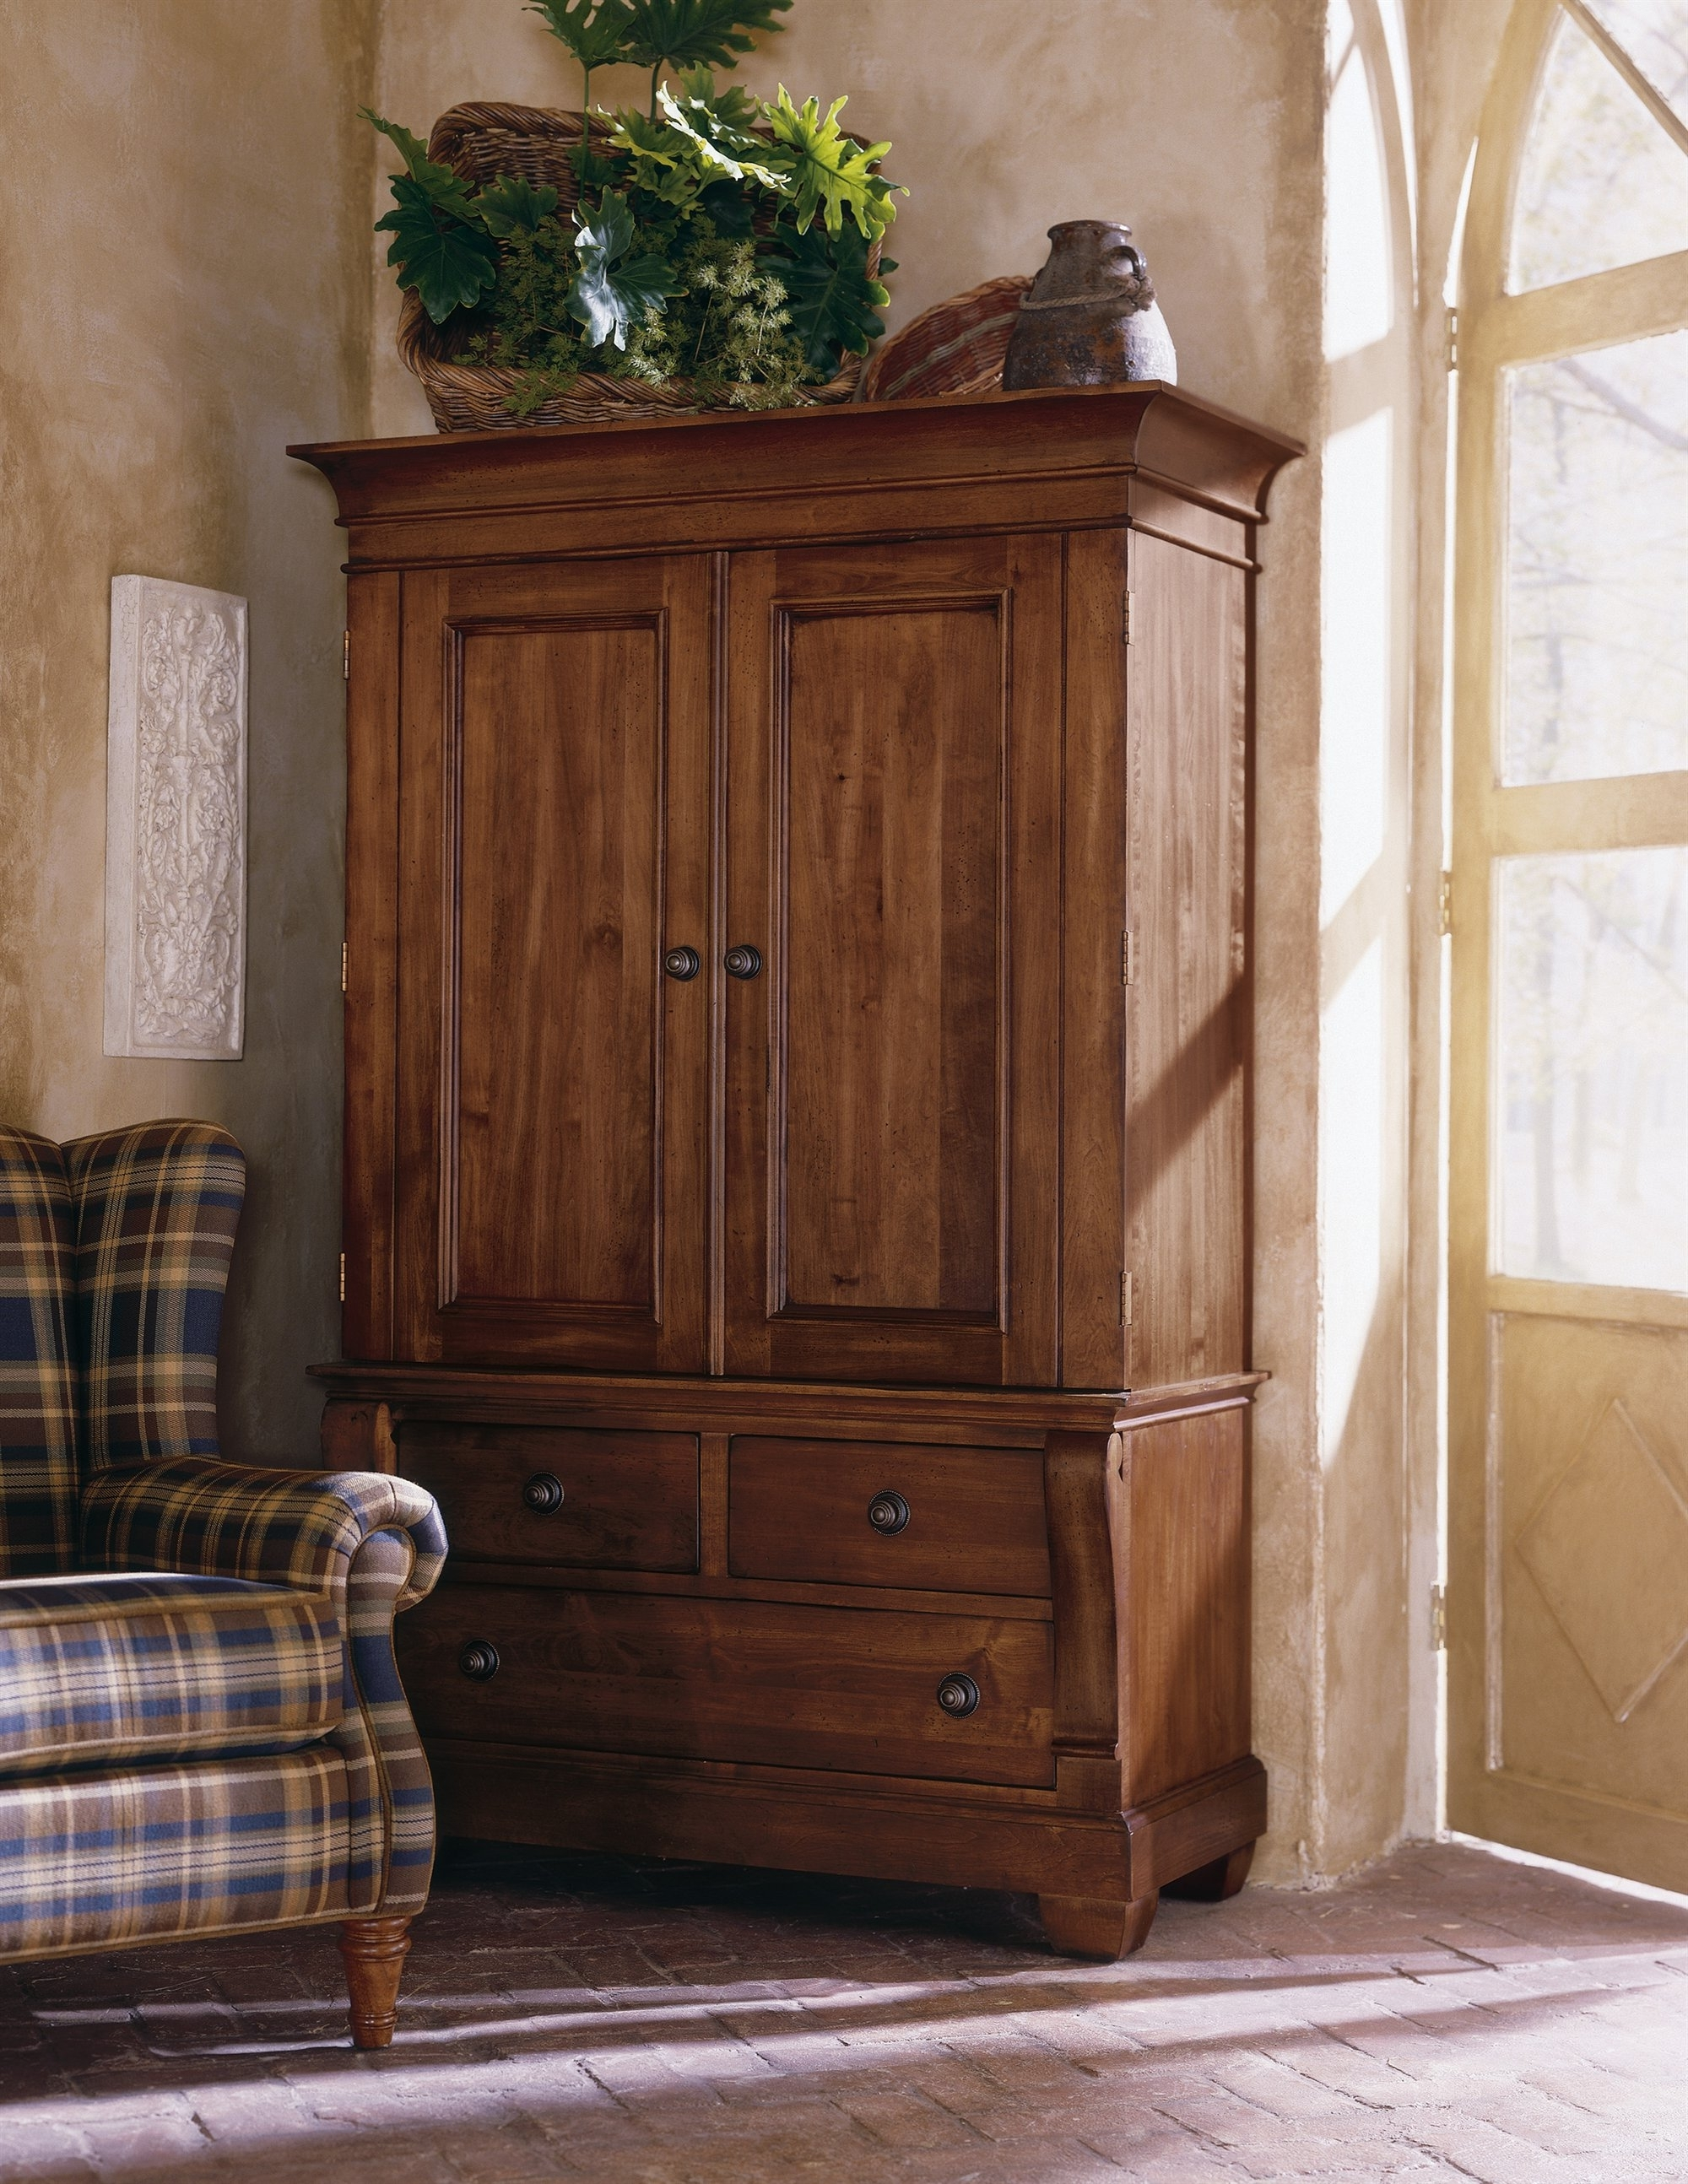 Wicker Armoire Wardrobes Regarding Latest Bedroom: Antique Interior Storage Design With Wardrobe Armoire (View 13 of 15)